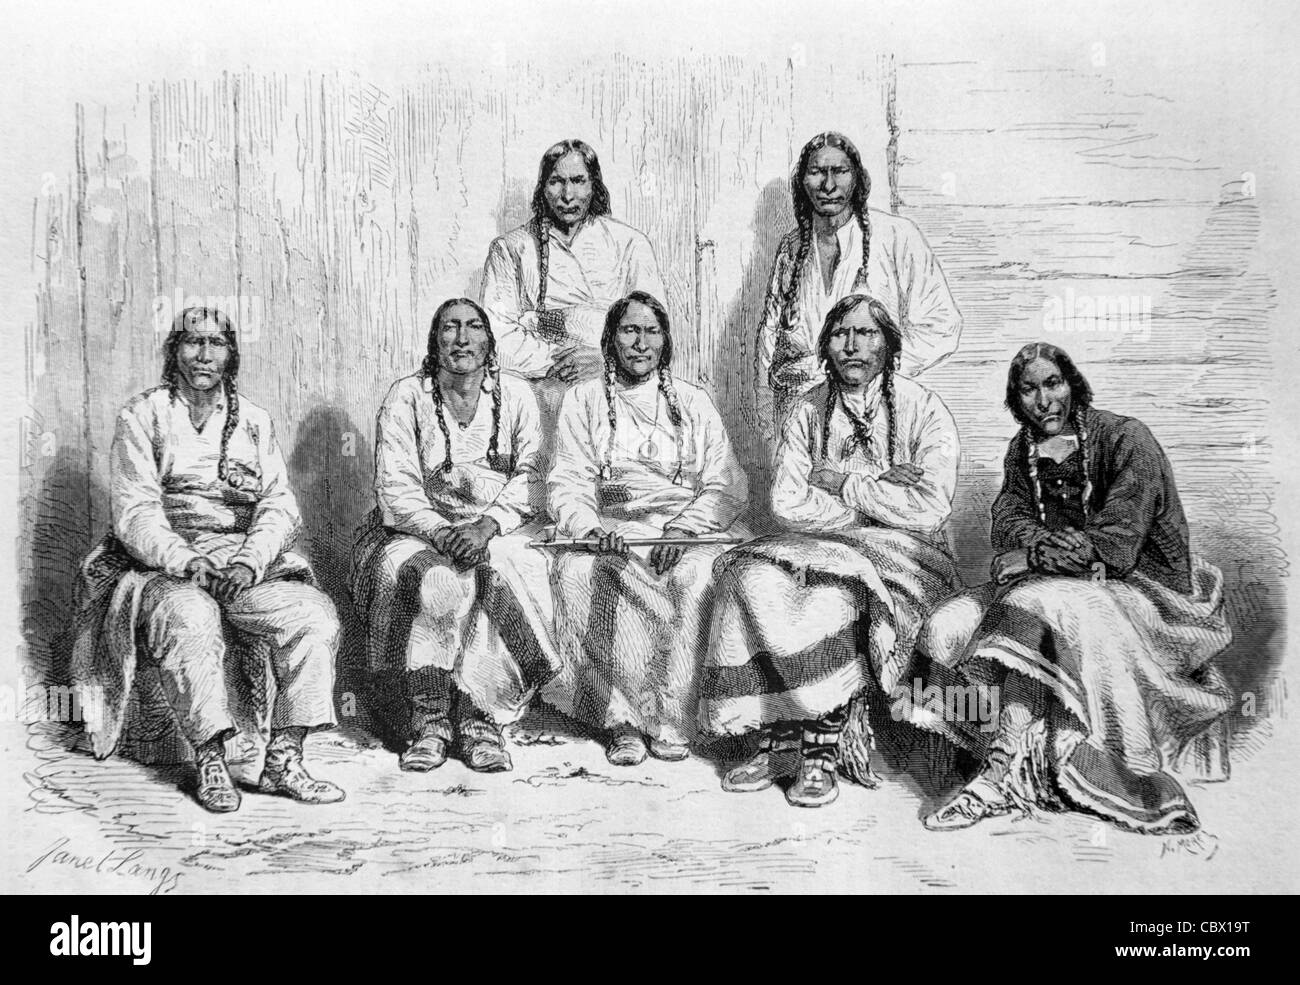 native americans in the united states and cheyenne essay 94 fun facts about native americans by karin  cheyenne, and arapaho warriors  compared to 13% in the united states native american teens graduate high school.